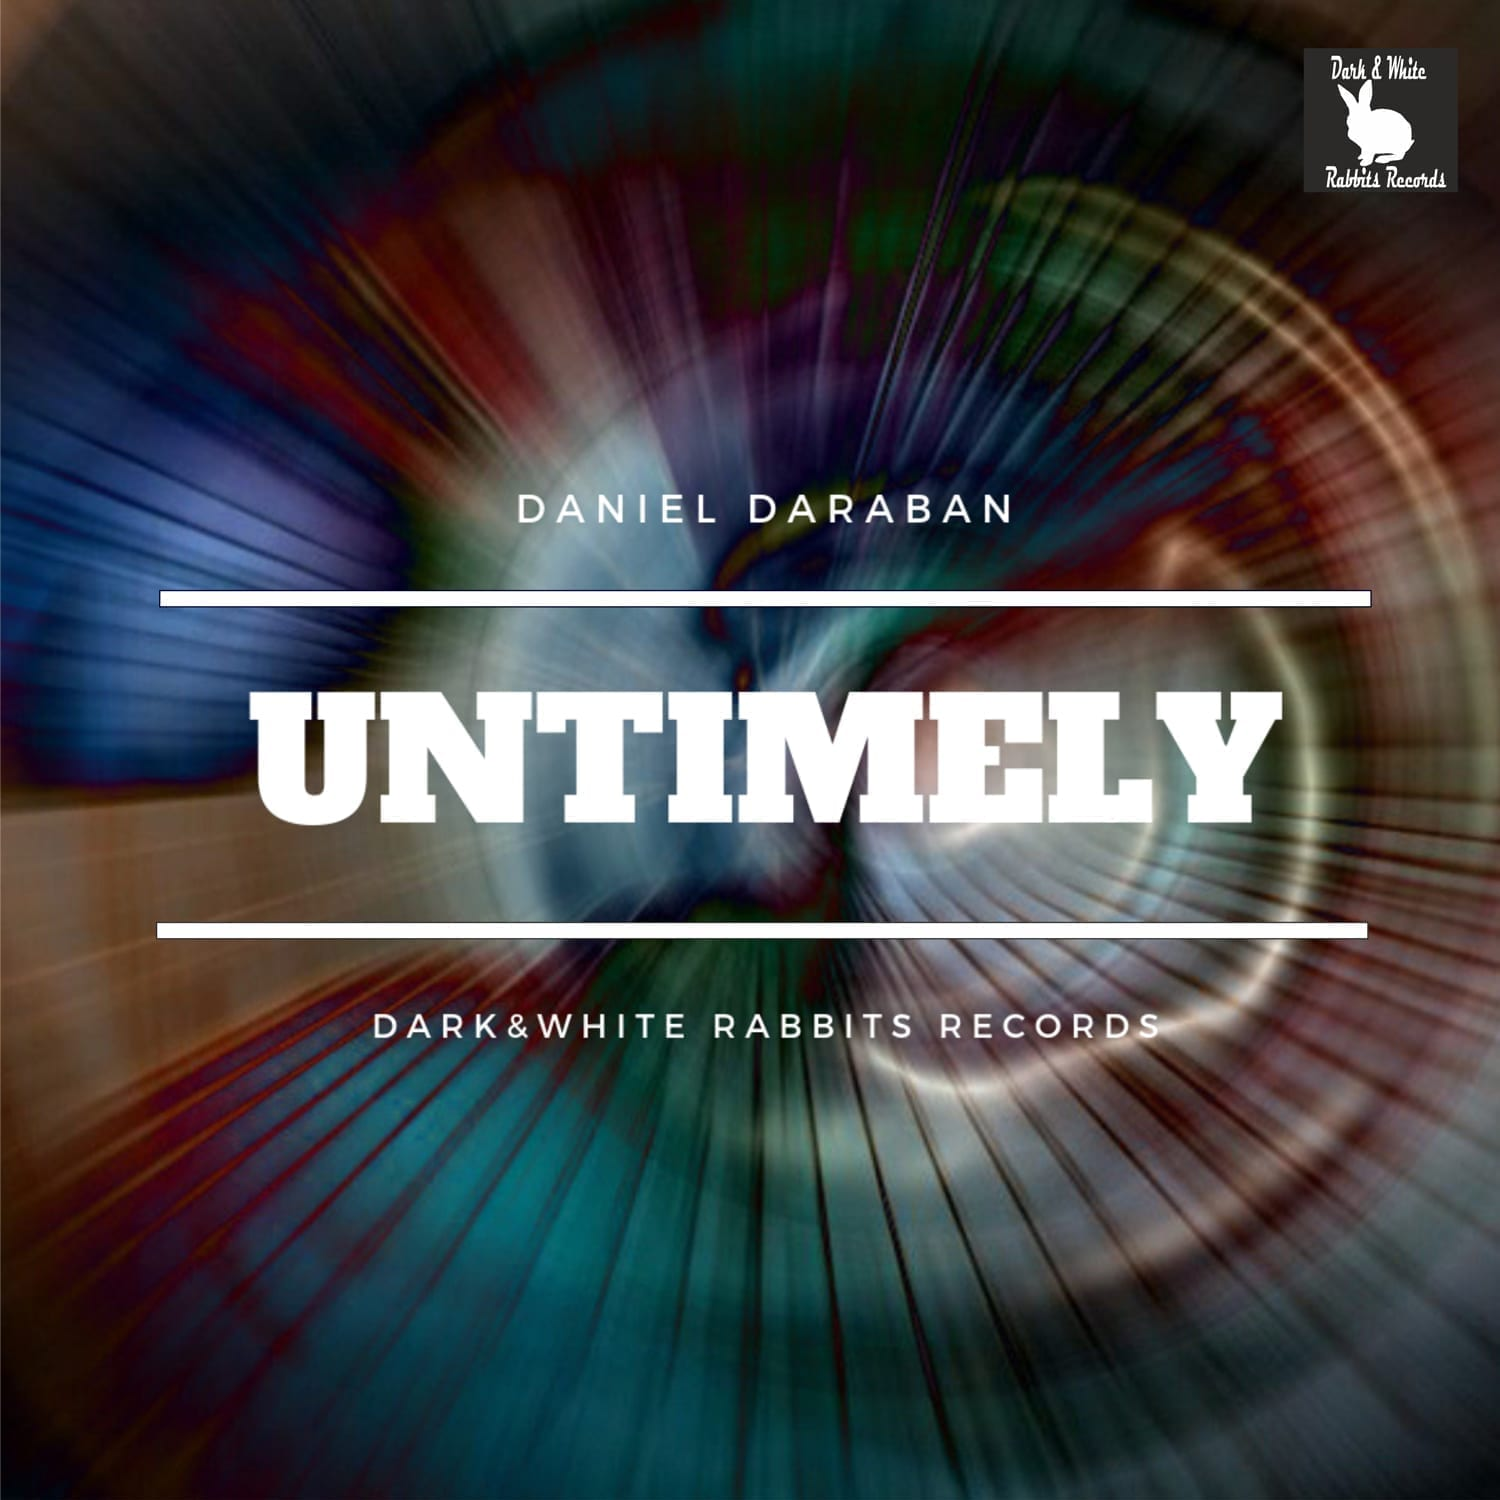 "Dark & White Rabbits Records presents ""Untimely"", another melodic techno vibe from Daniel Daraban"